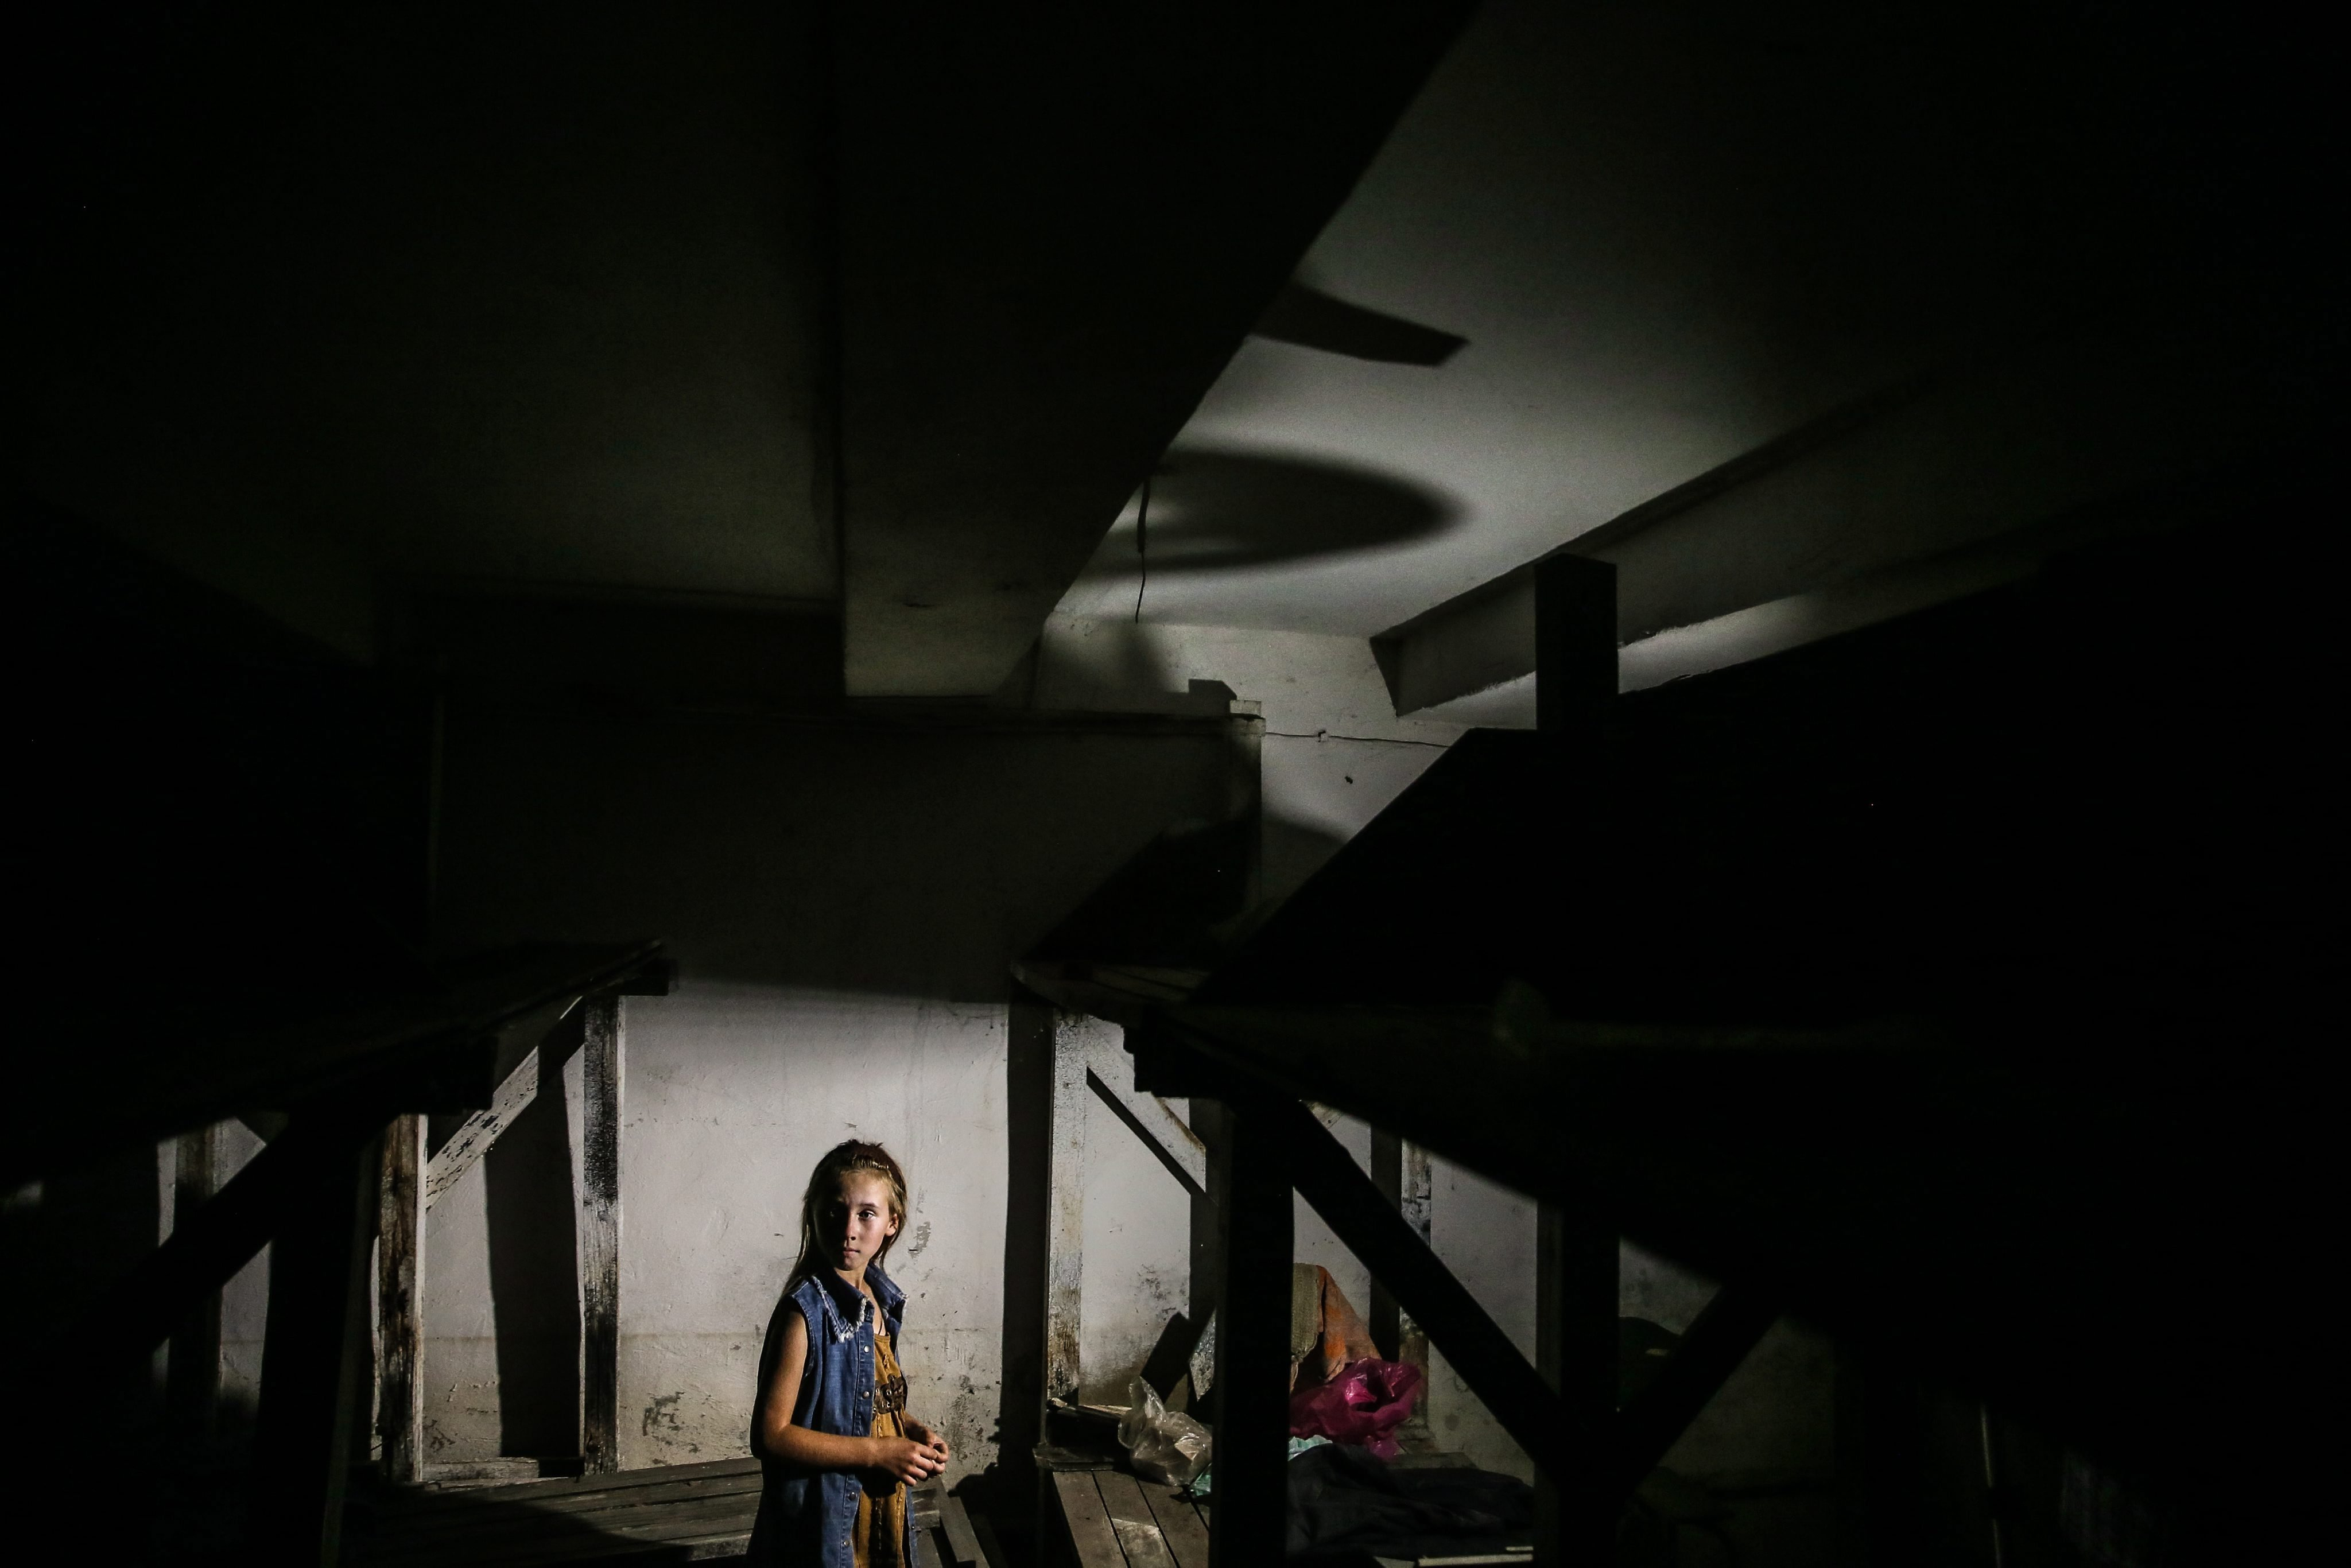 Tatiana, 9, stands in a shelter in Ilovaysk, some 50km from Donetsk, eastern Ukraine on August 14, 2014.